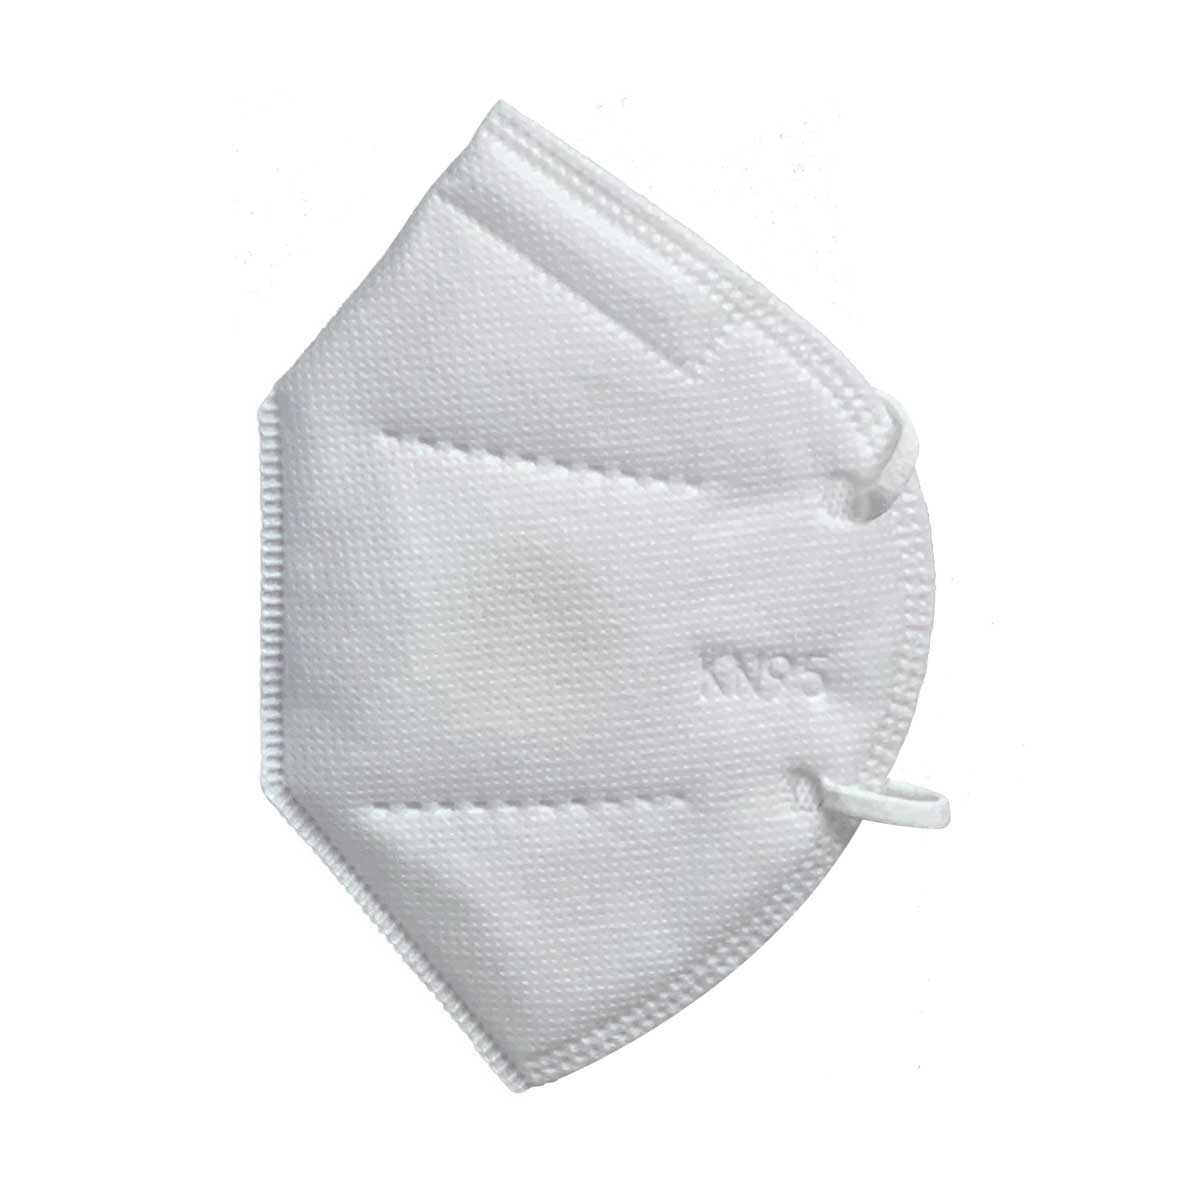 White KN95 Protective Face Masks (20 Pack)